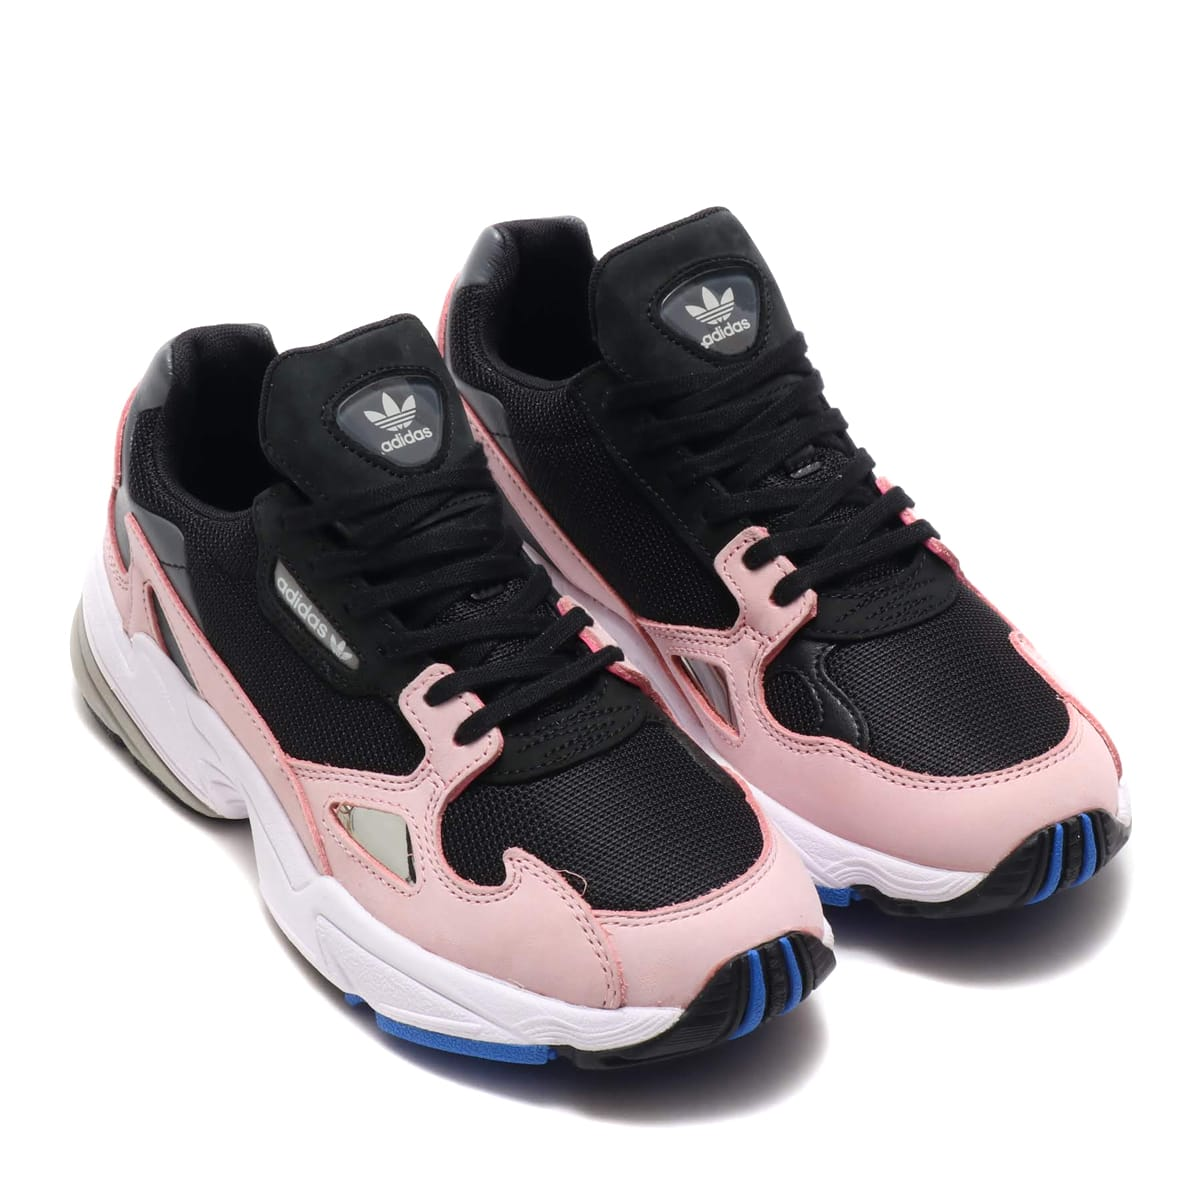 adidas Originals FALCON W CORE BLACK/CORE BLACK/LIGHT PINK 18FW-I_photo_large